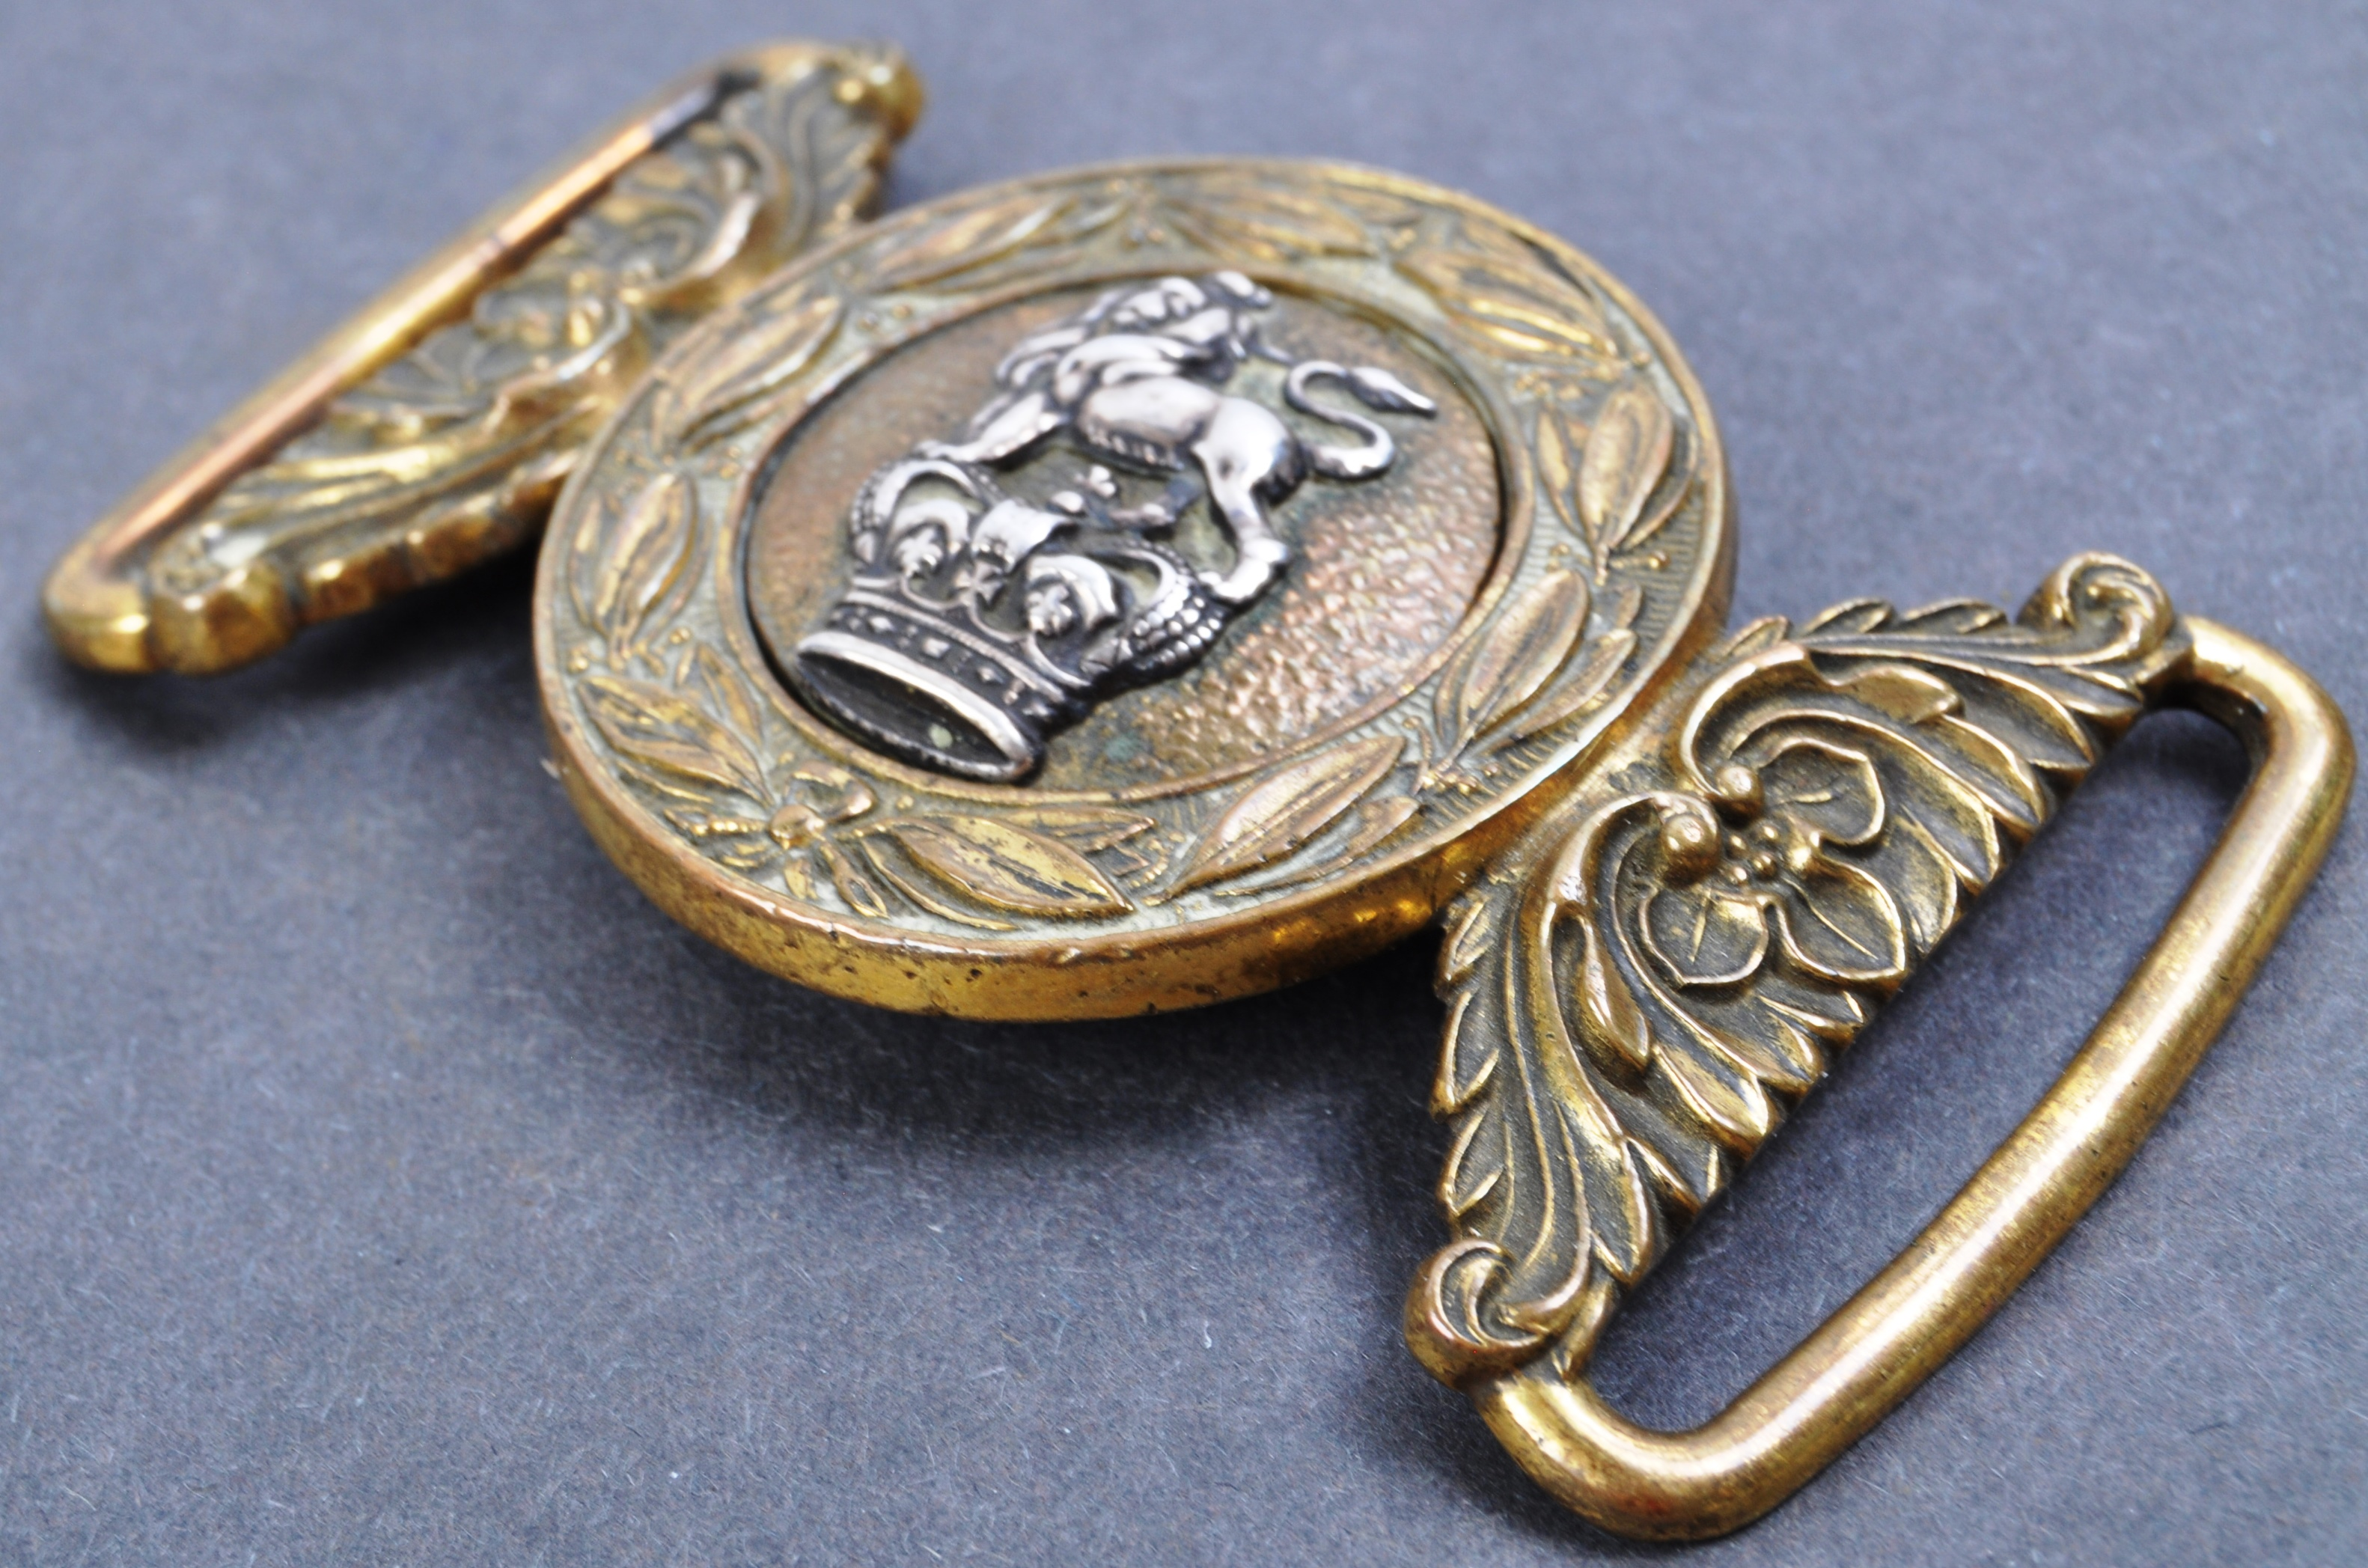 19TH CENTURY VICTORIAN BRITISH ARMY OFFICERS UNIFORM BELT BUCKLE - Image 4 of 4